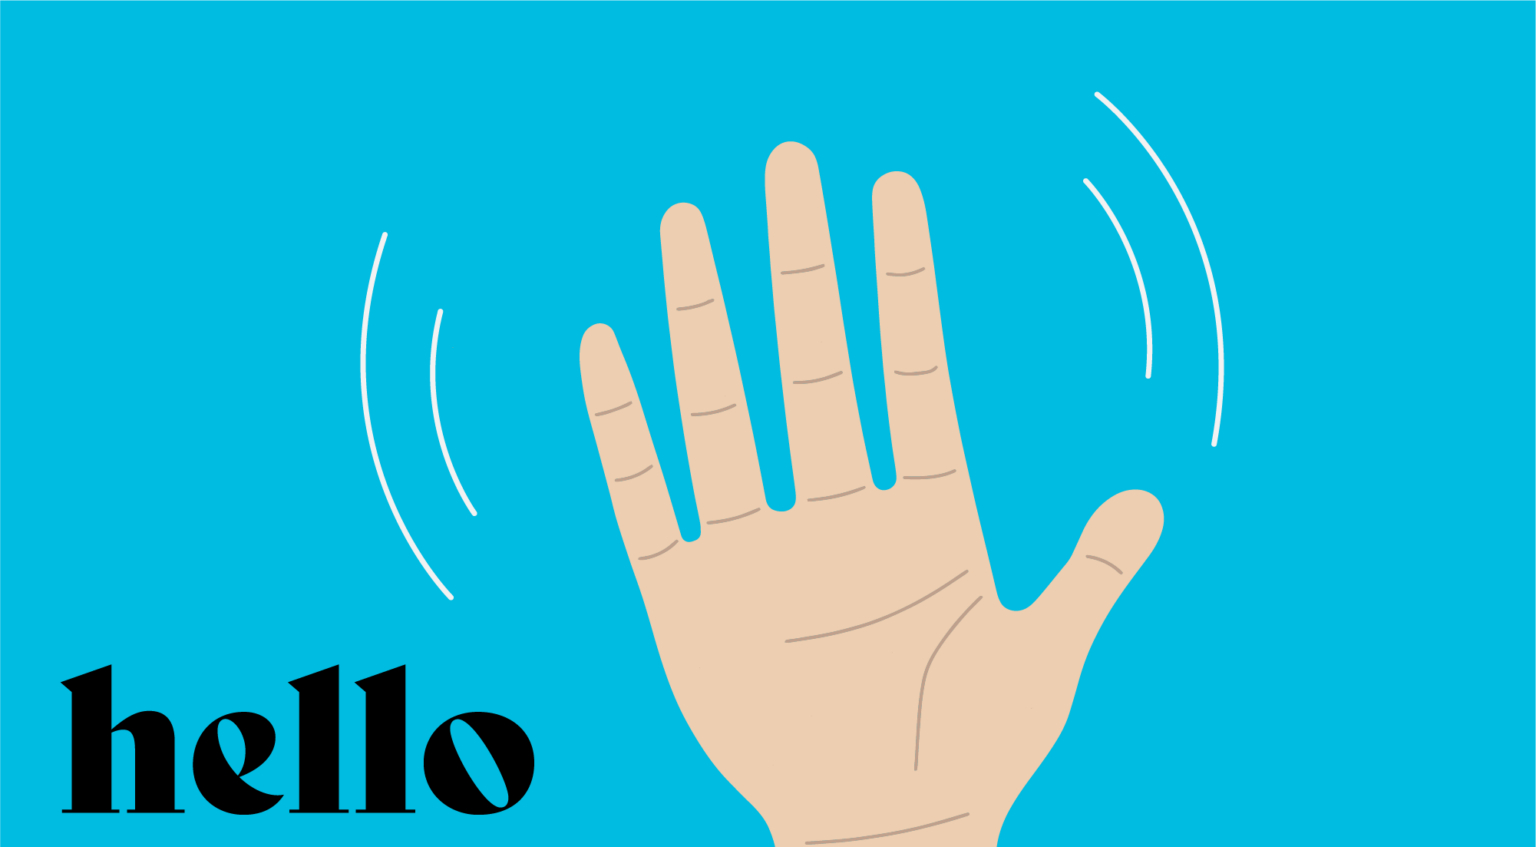 Waving hand on blue background with the word 'hello' in black